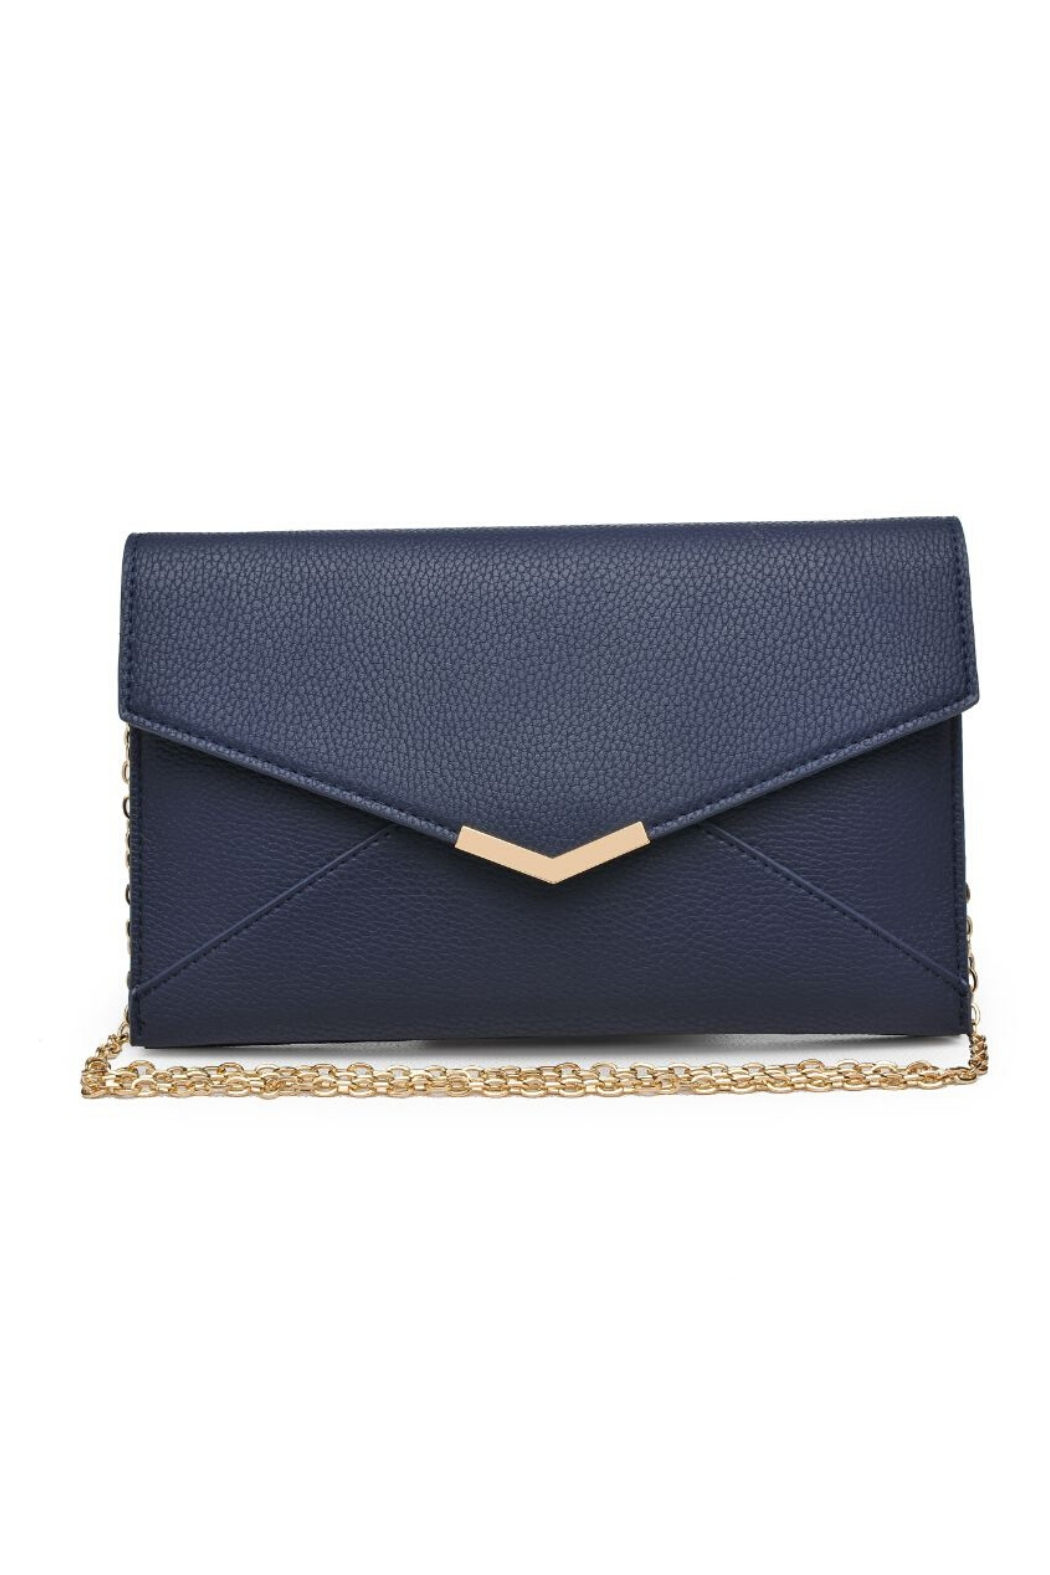 Urban Expressions Isabelle Vegan Crossbody - Front Cropped Image